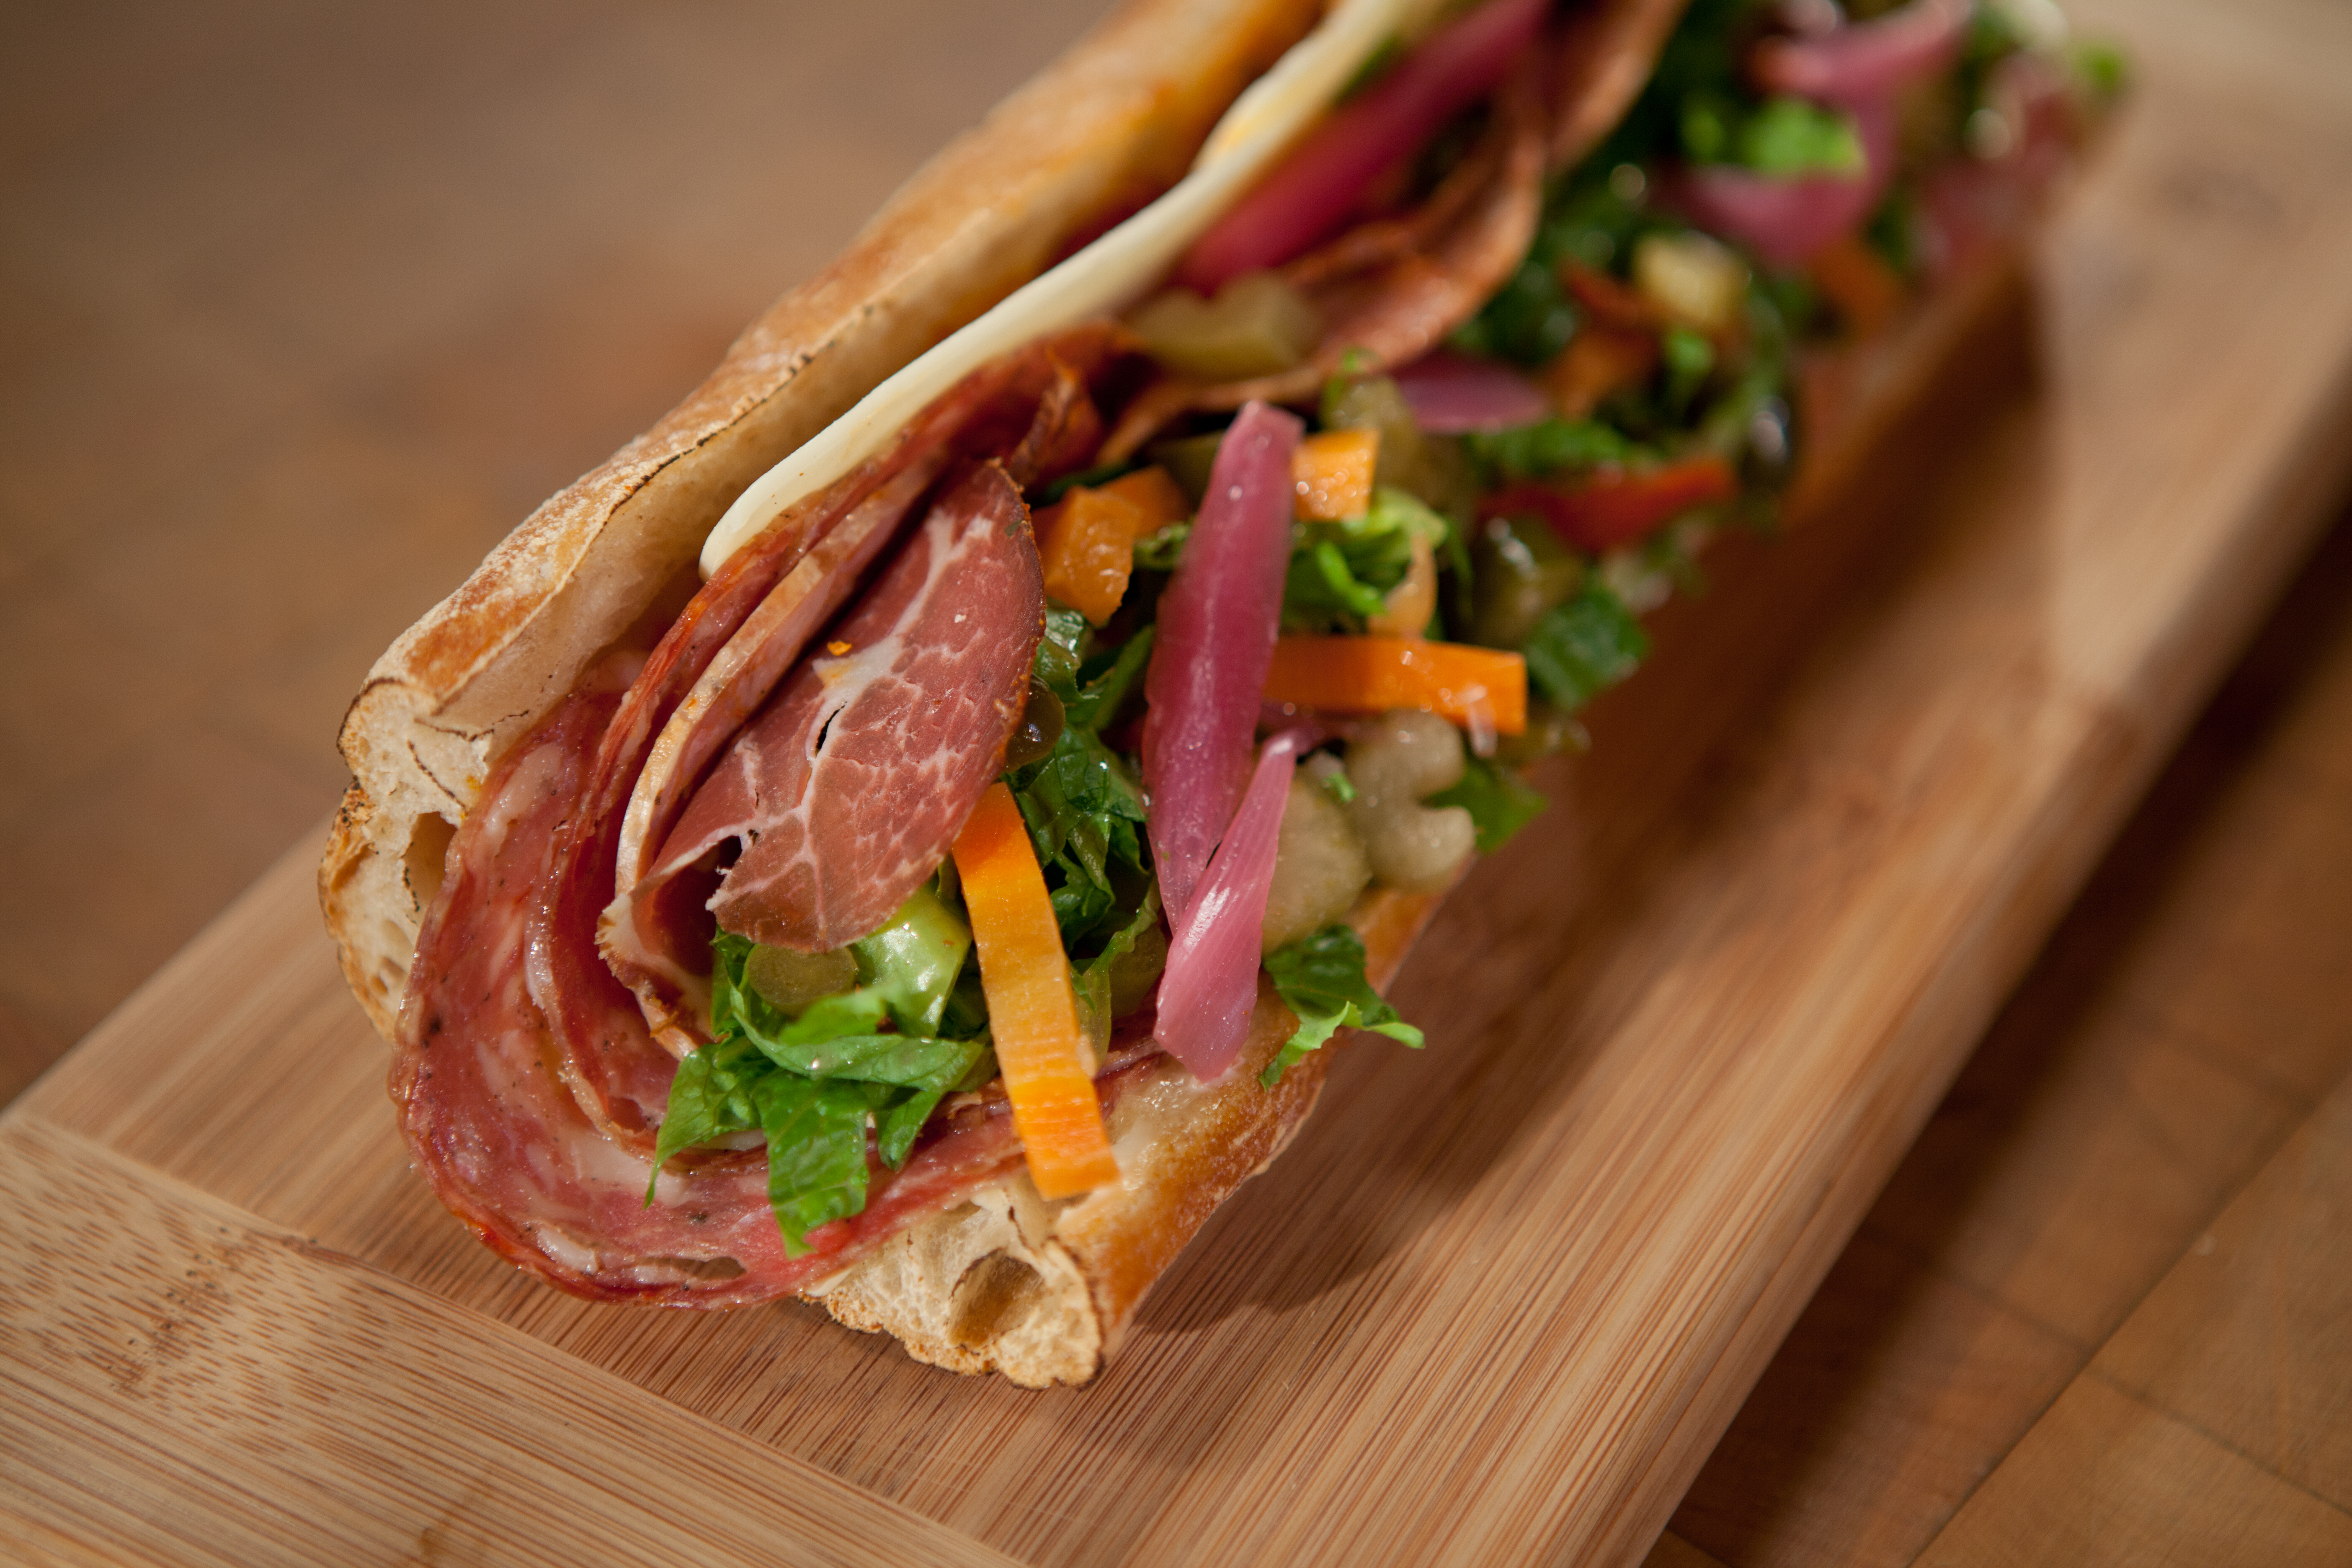 Make a stop at Goose the Market to stock up on local artisanal products and fantastic sandwiches like the Batali (above), a moreish combination of spicy salami meats, bright pickled onions, and provolone. (Courtesy of Goose the Market)